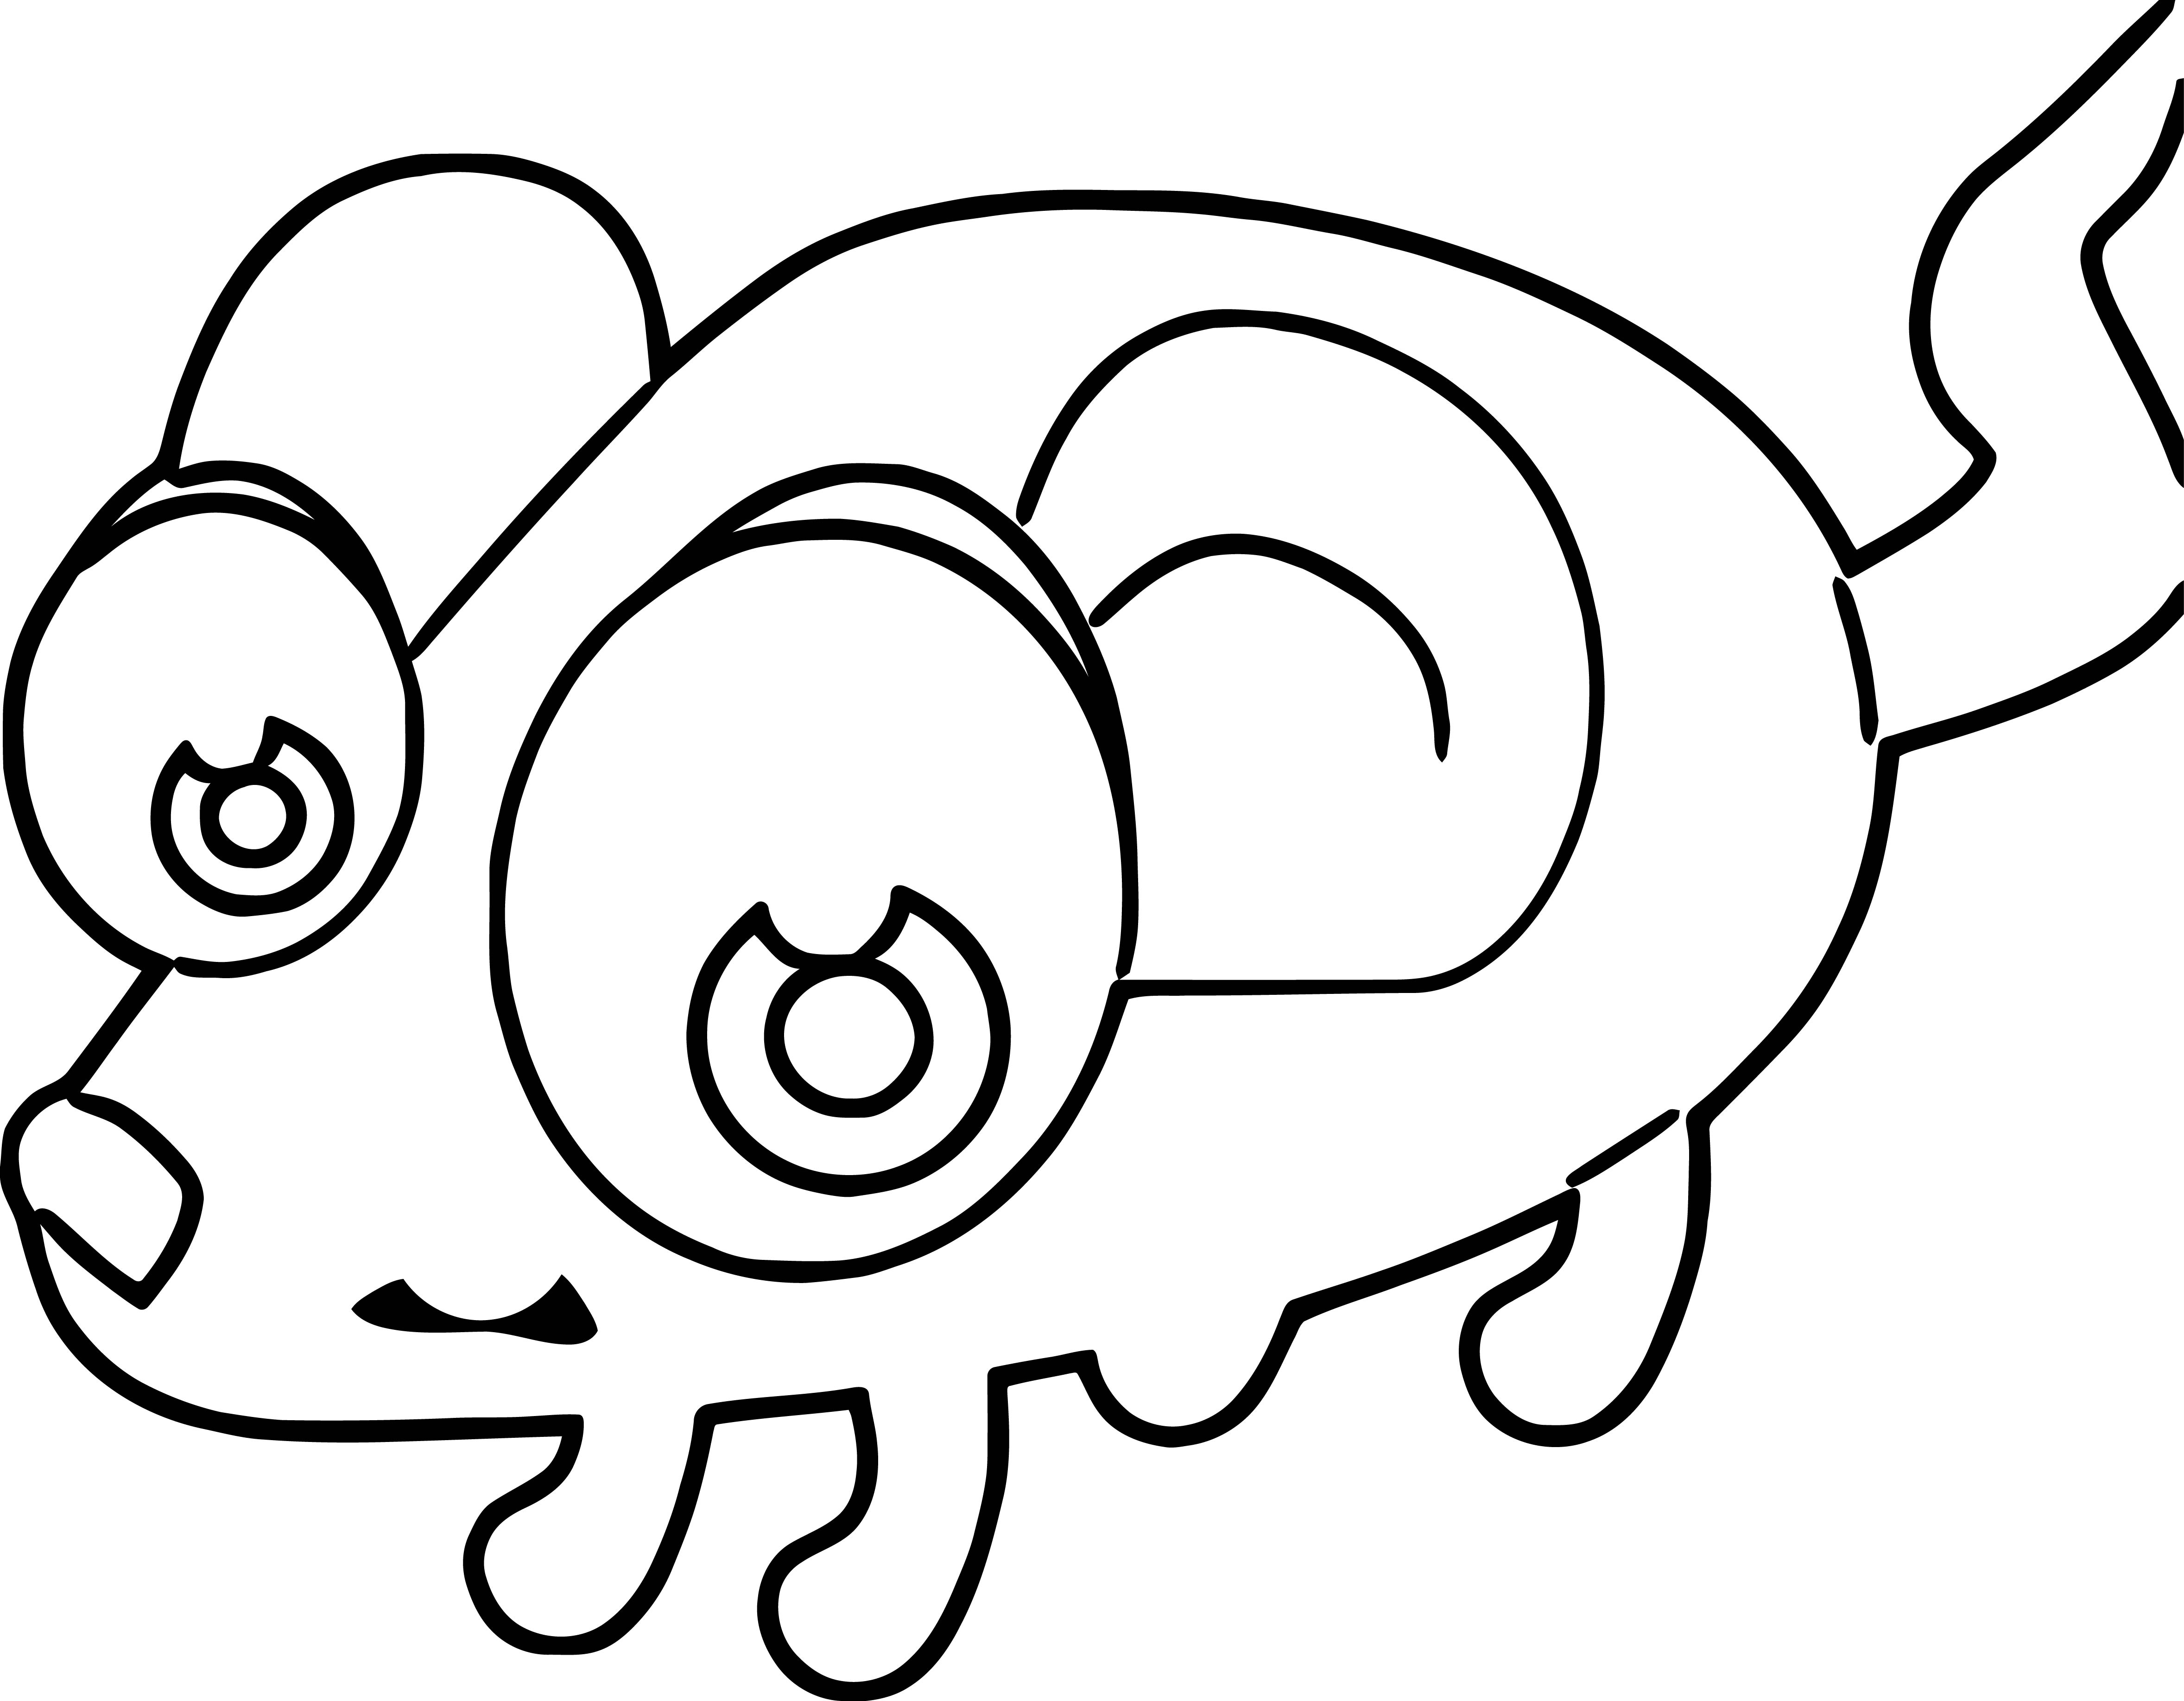 Mouse Jpeg Coloring Page 07